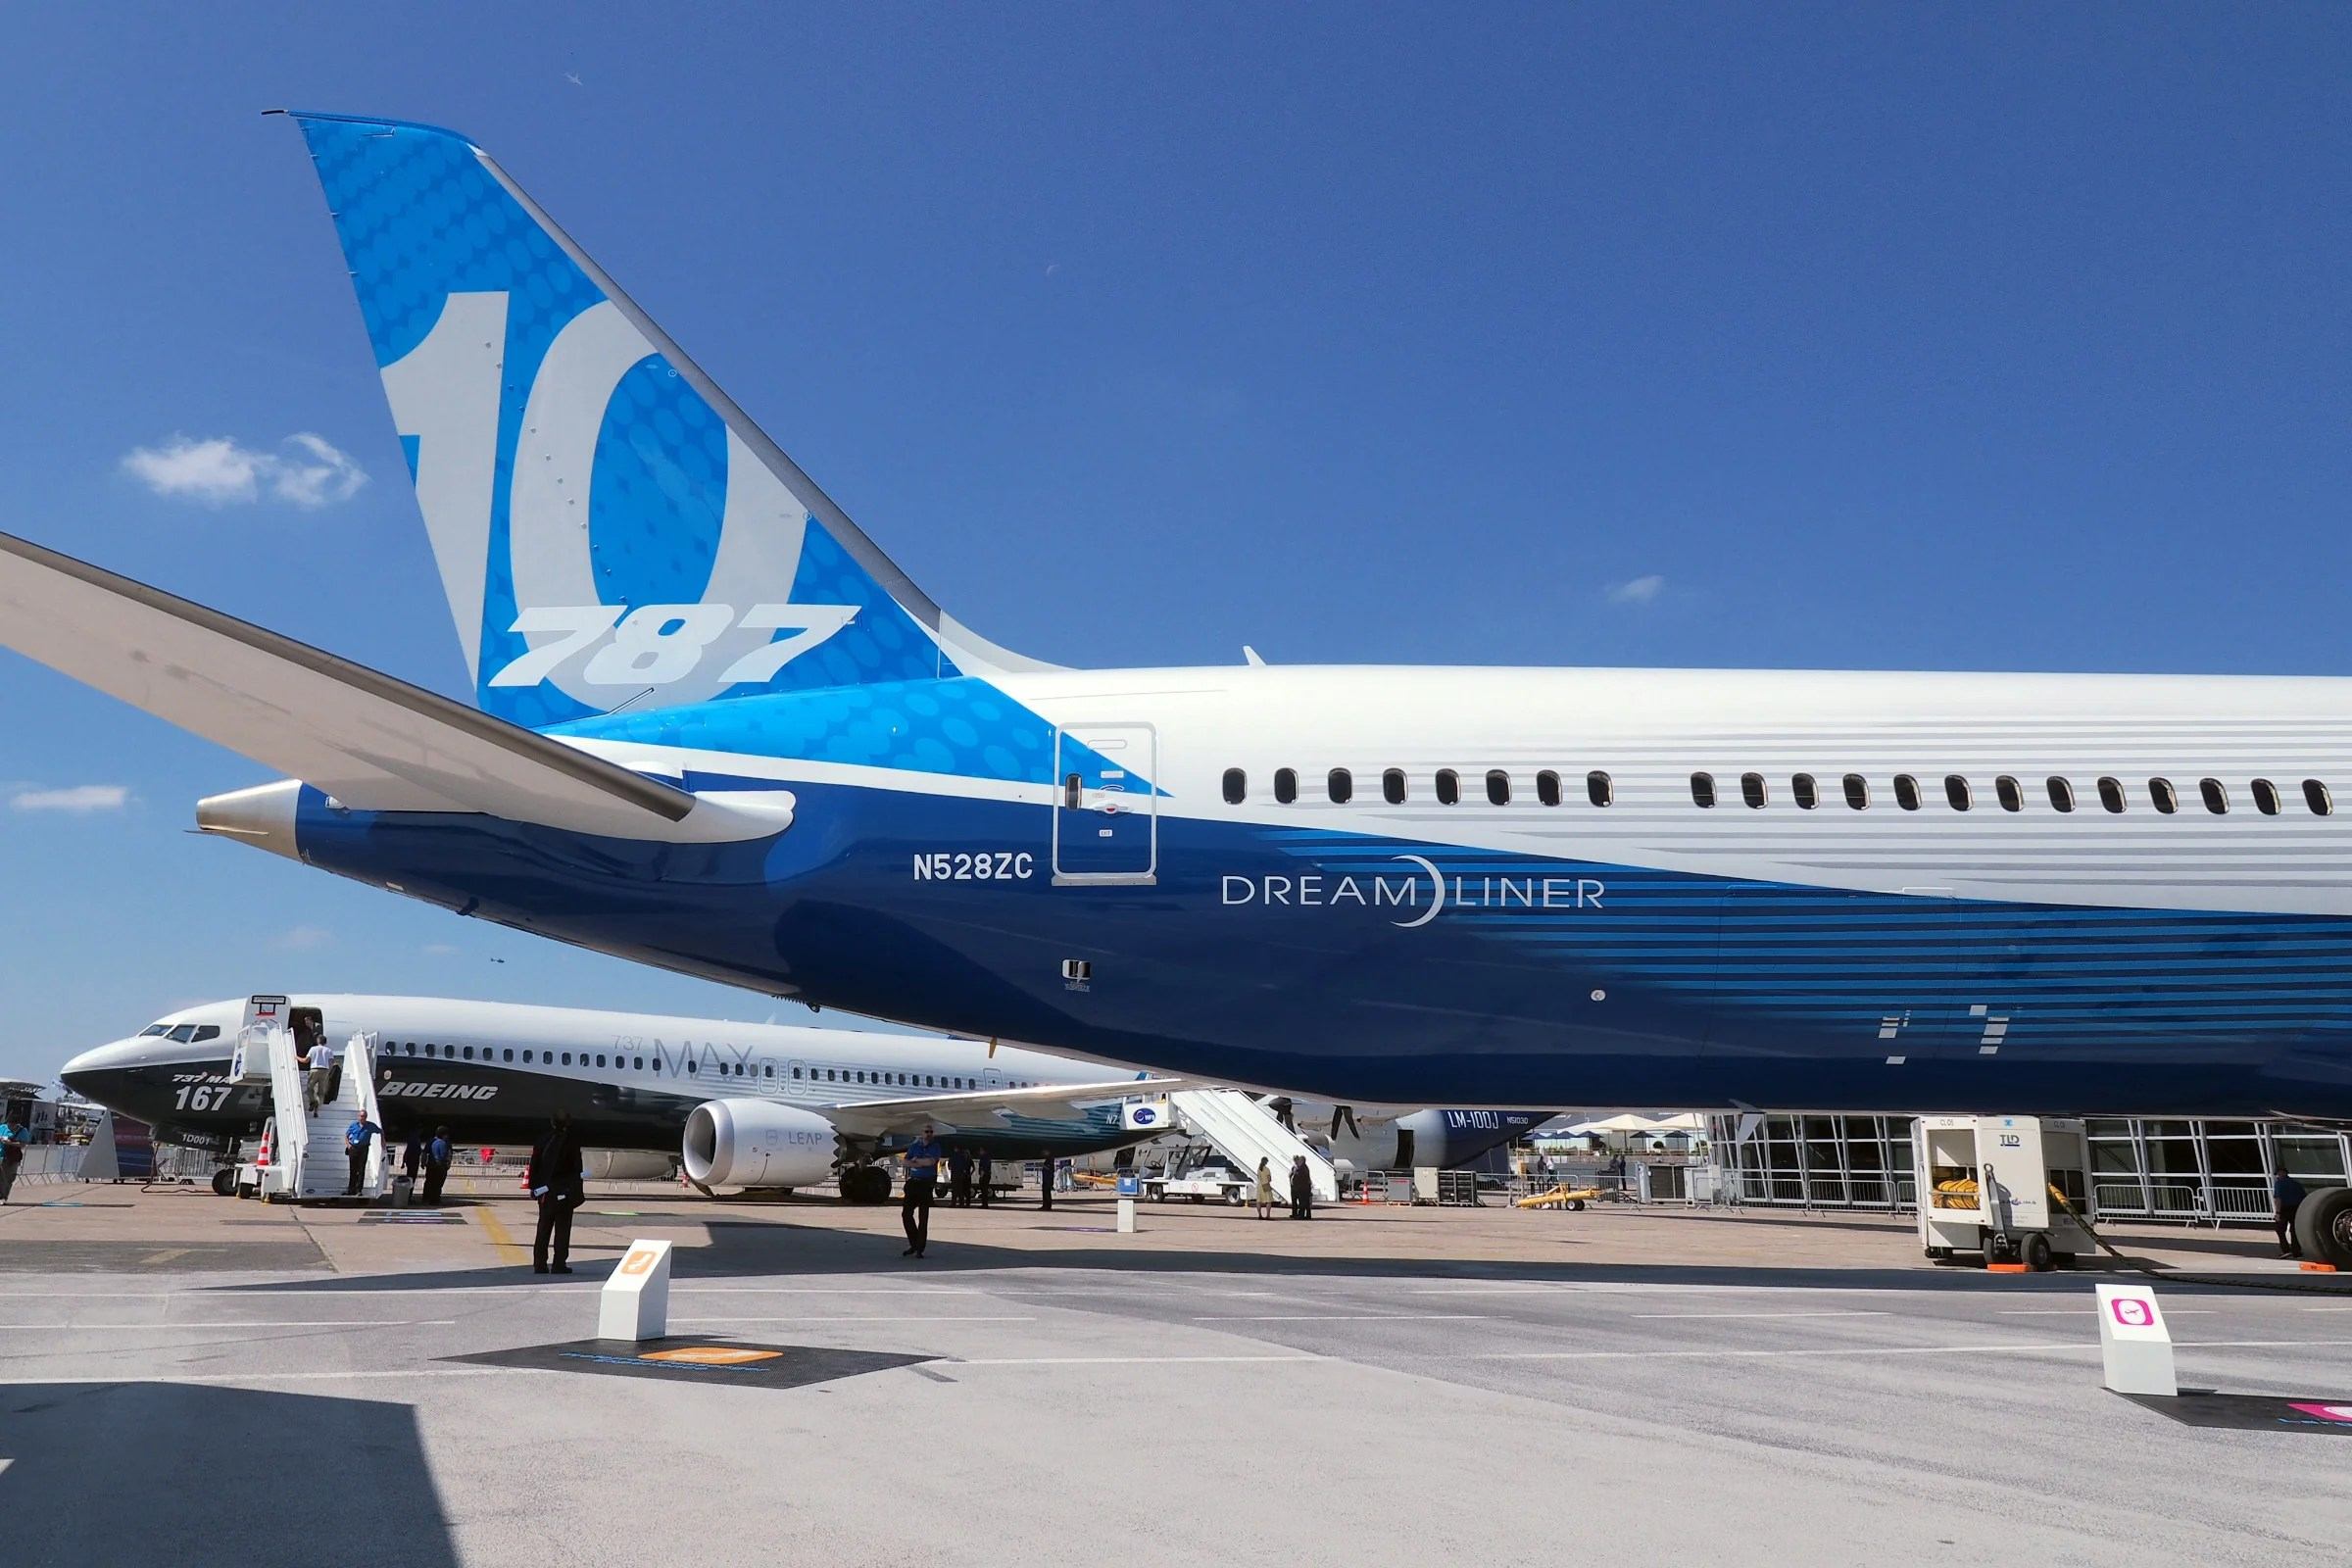 Boeing's first-ever Dreamliner flight was 10 years ago this week